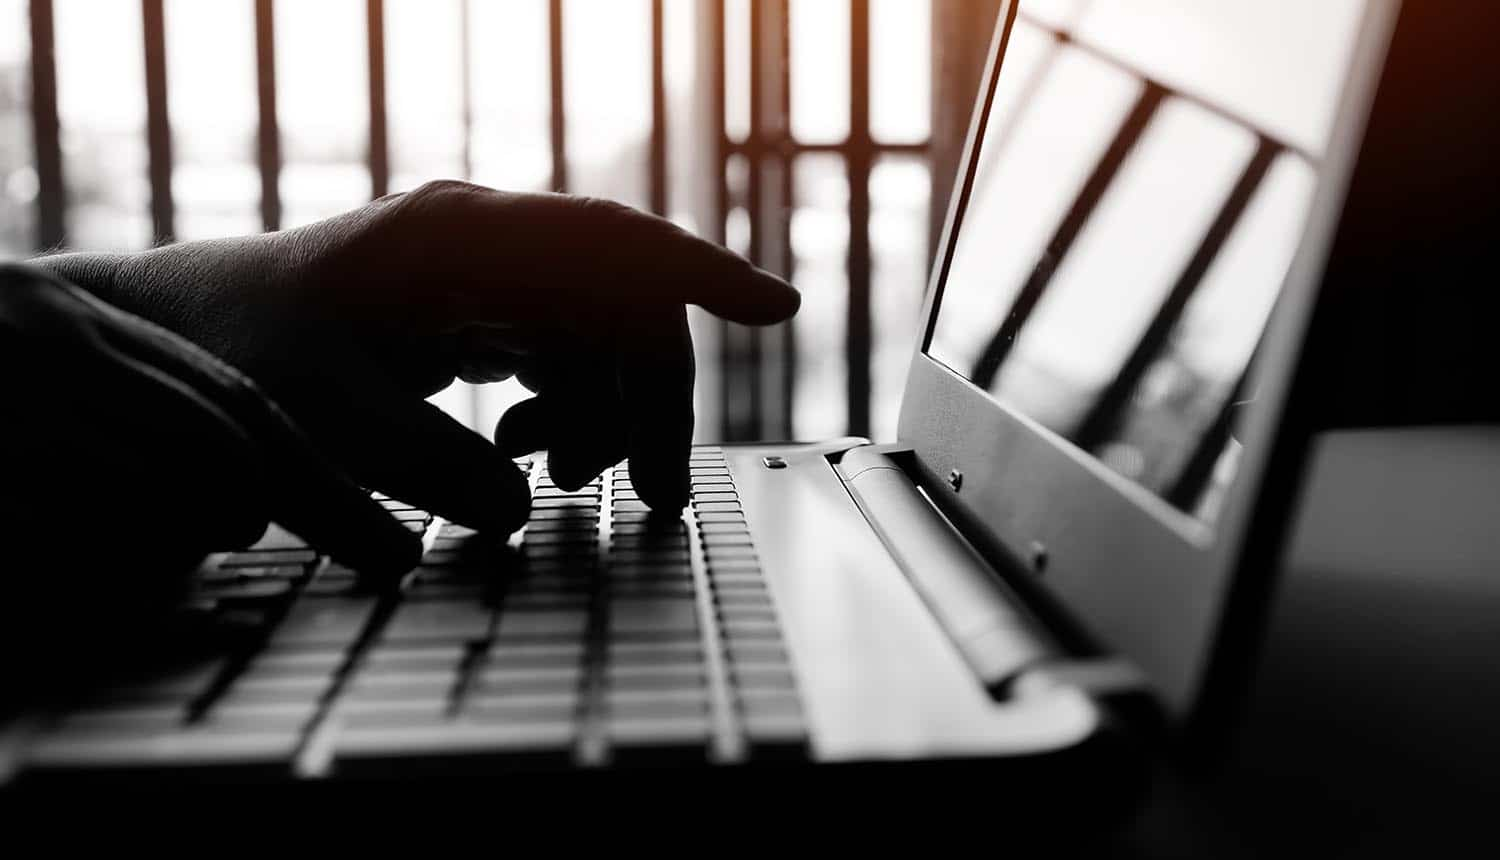 Hands typing on laptop showing insider threats